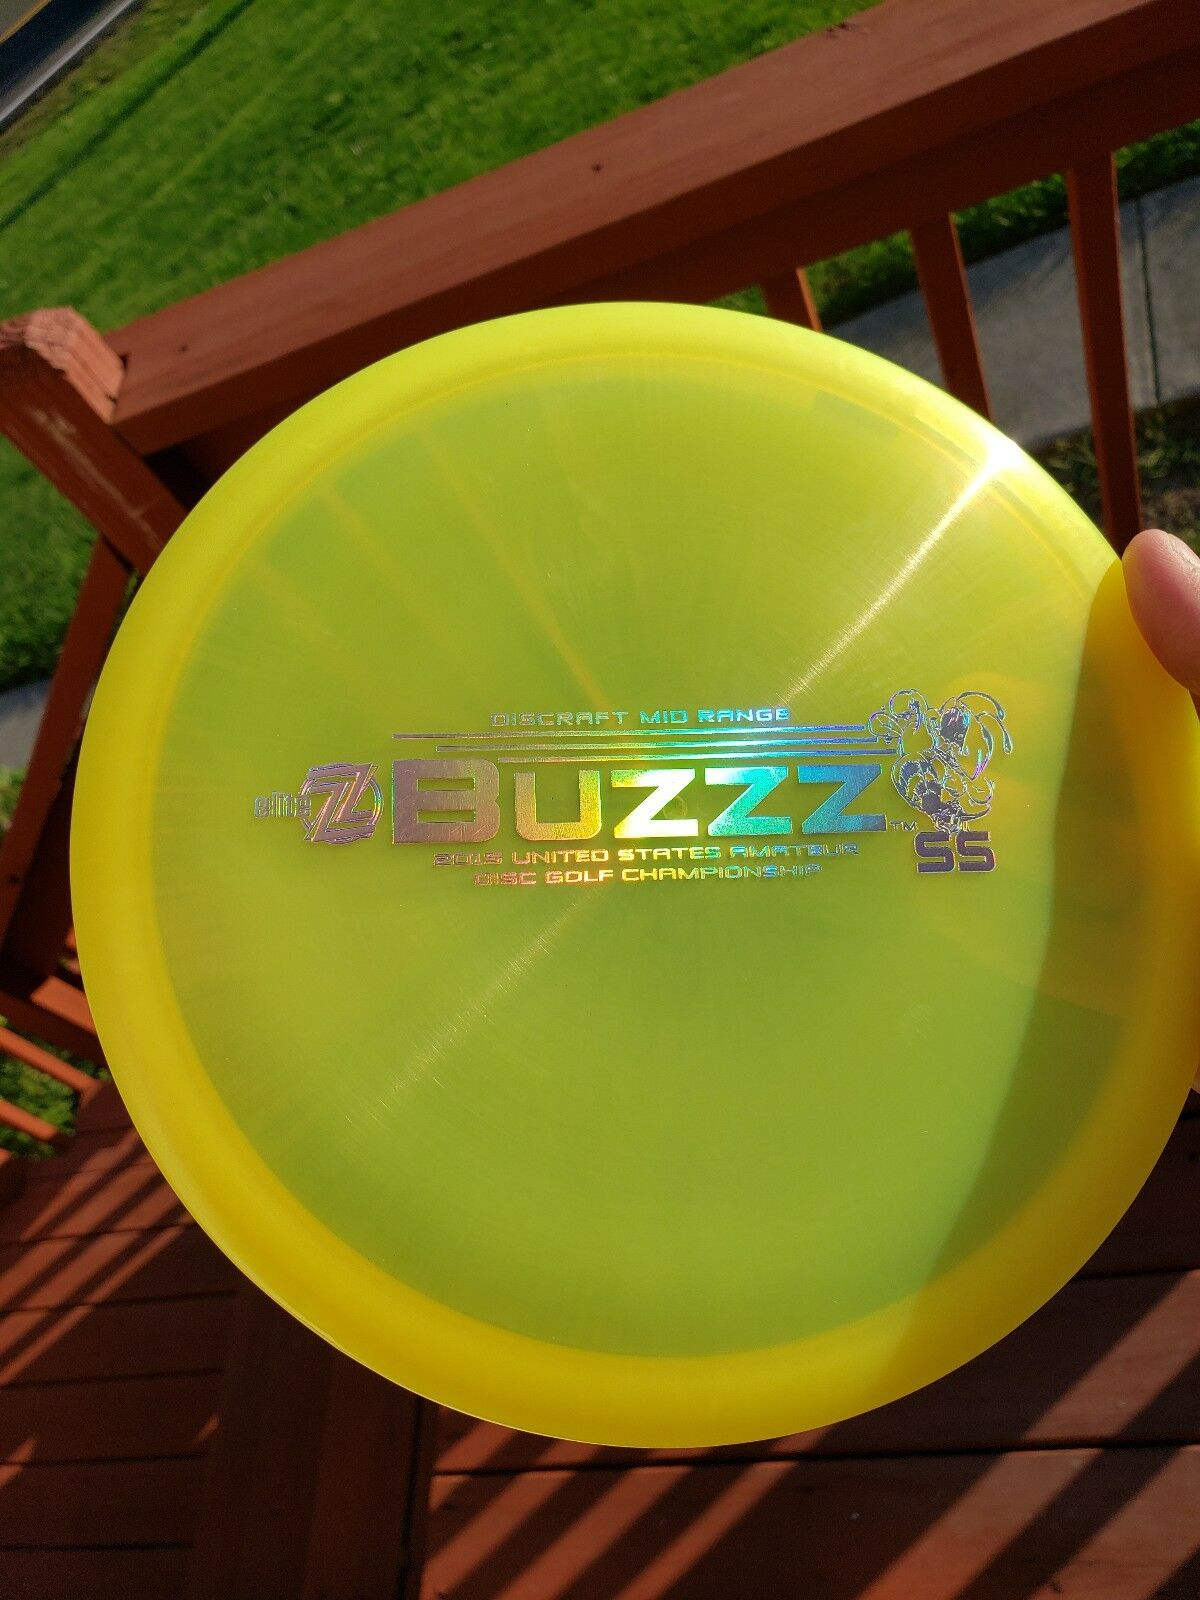 2015 united states amateur champion ships  buzzz